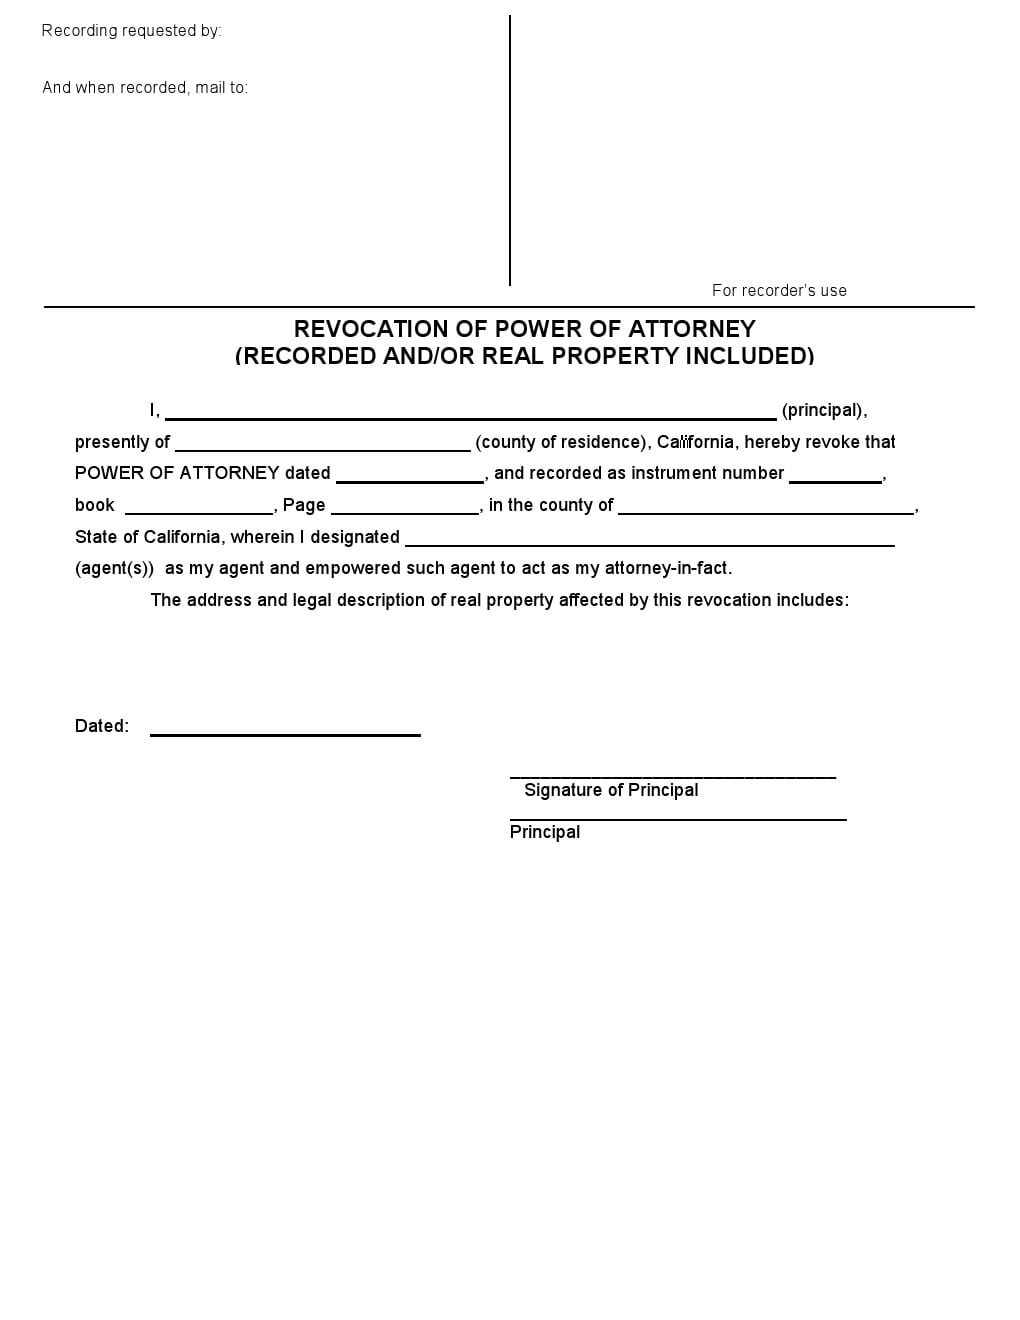 California Revocation of Power of Attorney